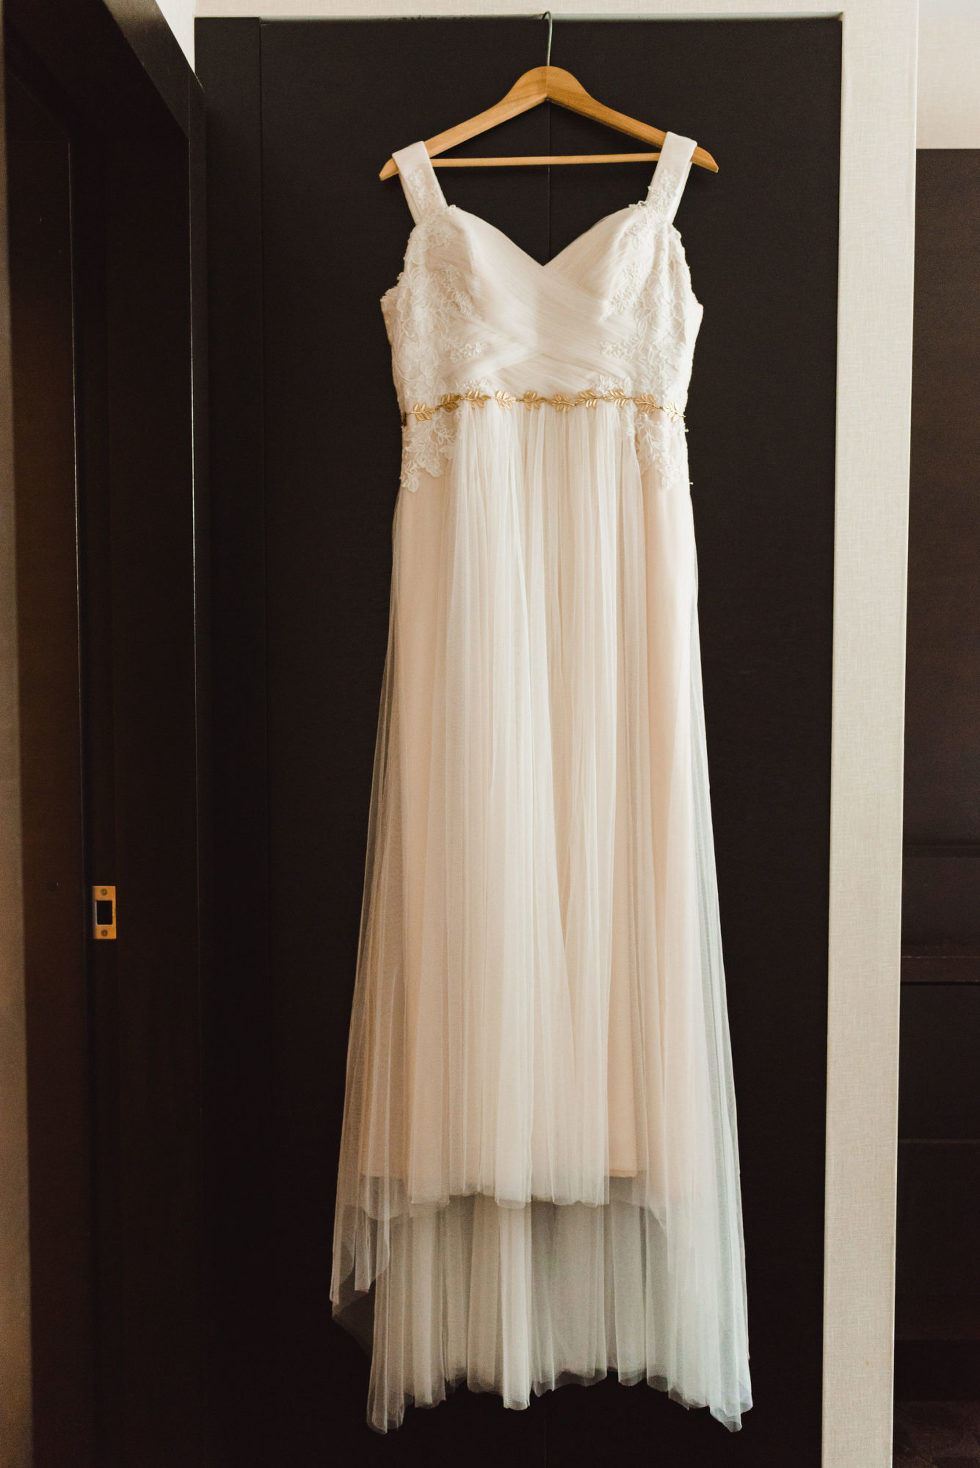 white wedding dress hanging on the back of a brown door Toronto brewery wedding photography